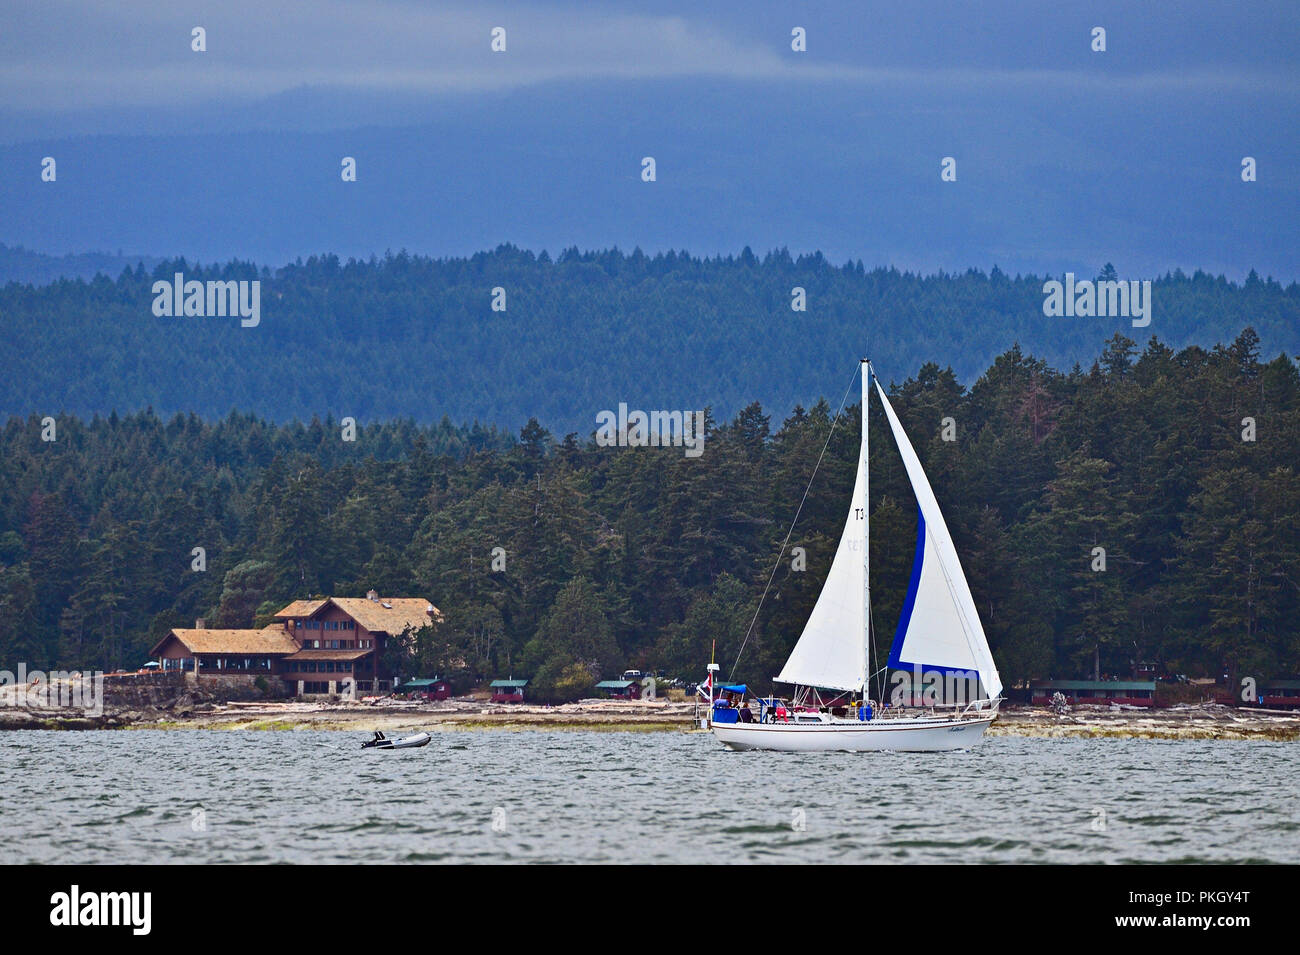 A sail boat enjoying the wind crusing along the shore line near Yellow Point on Vancouver Island British Columbia Canada - Stock Image